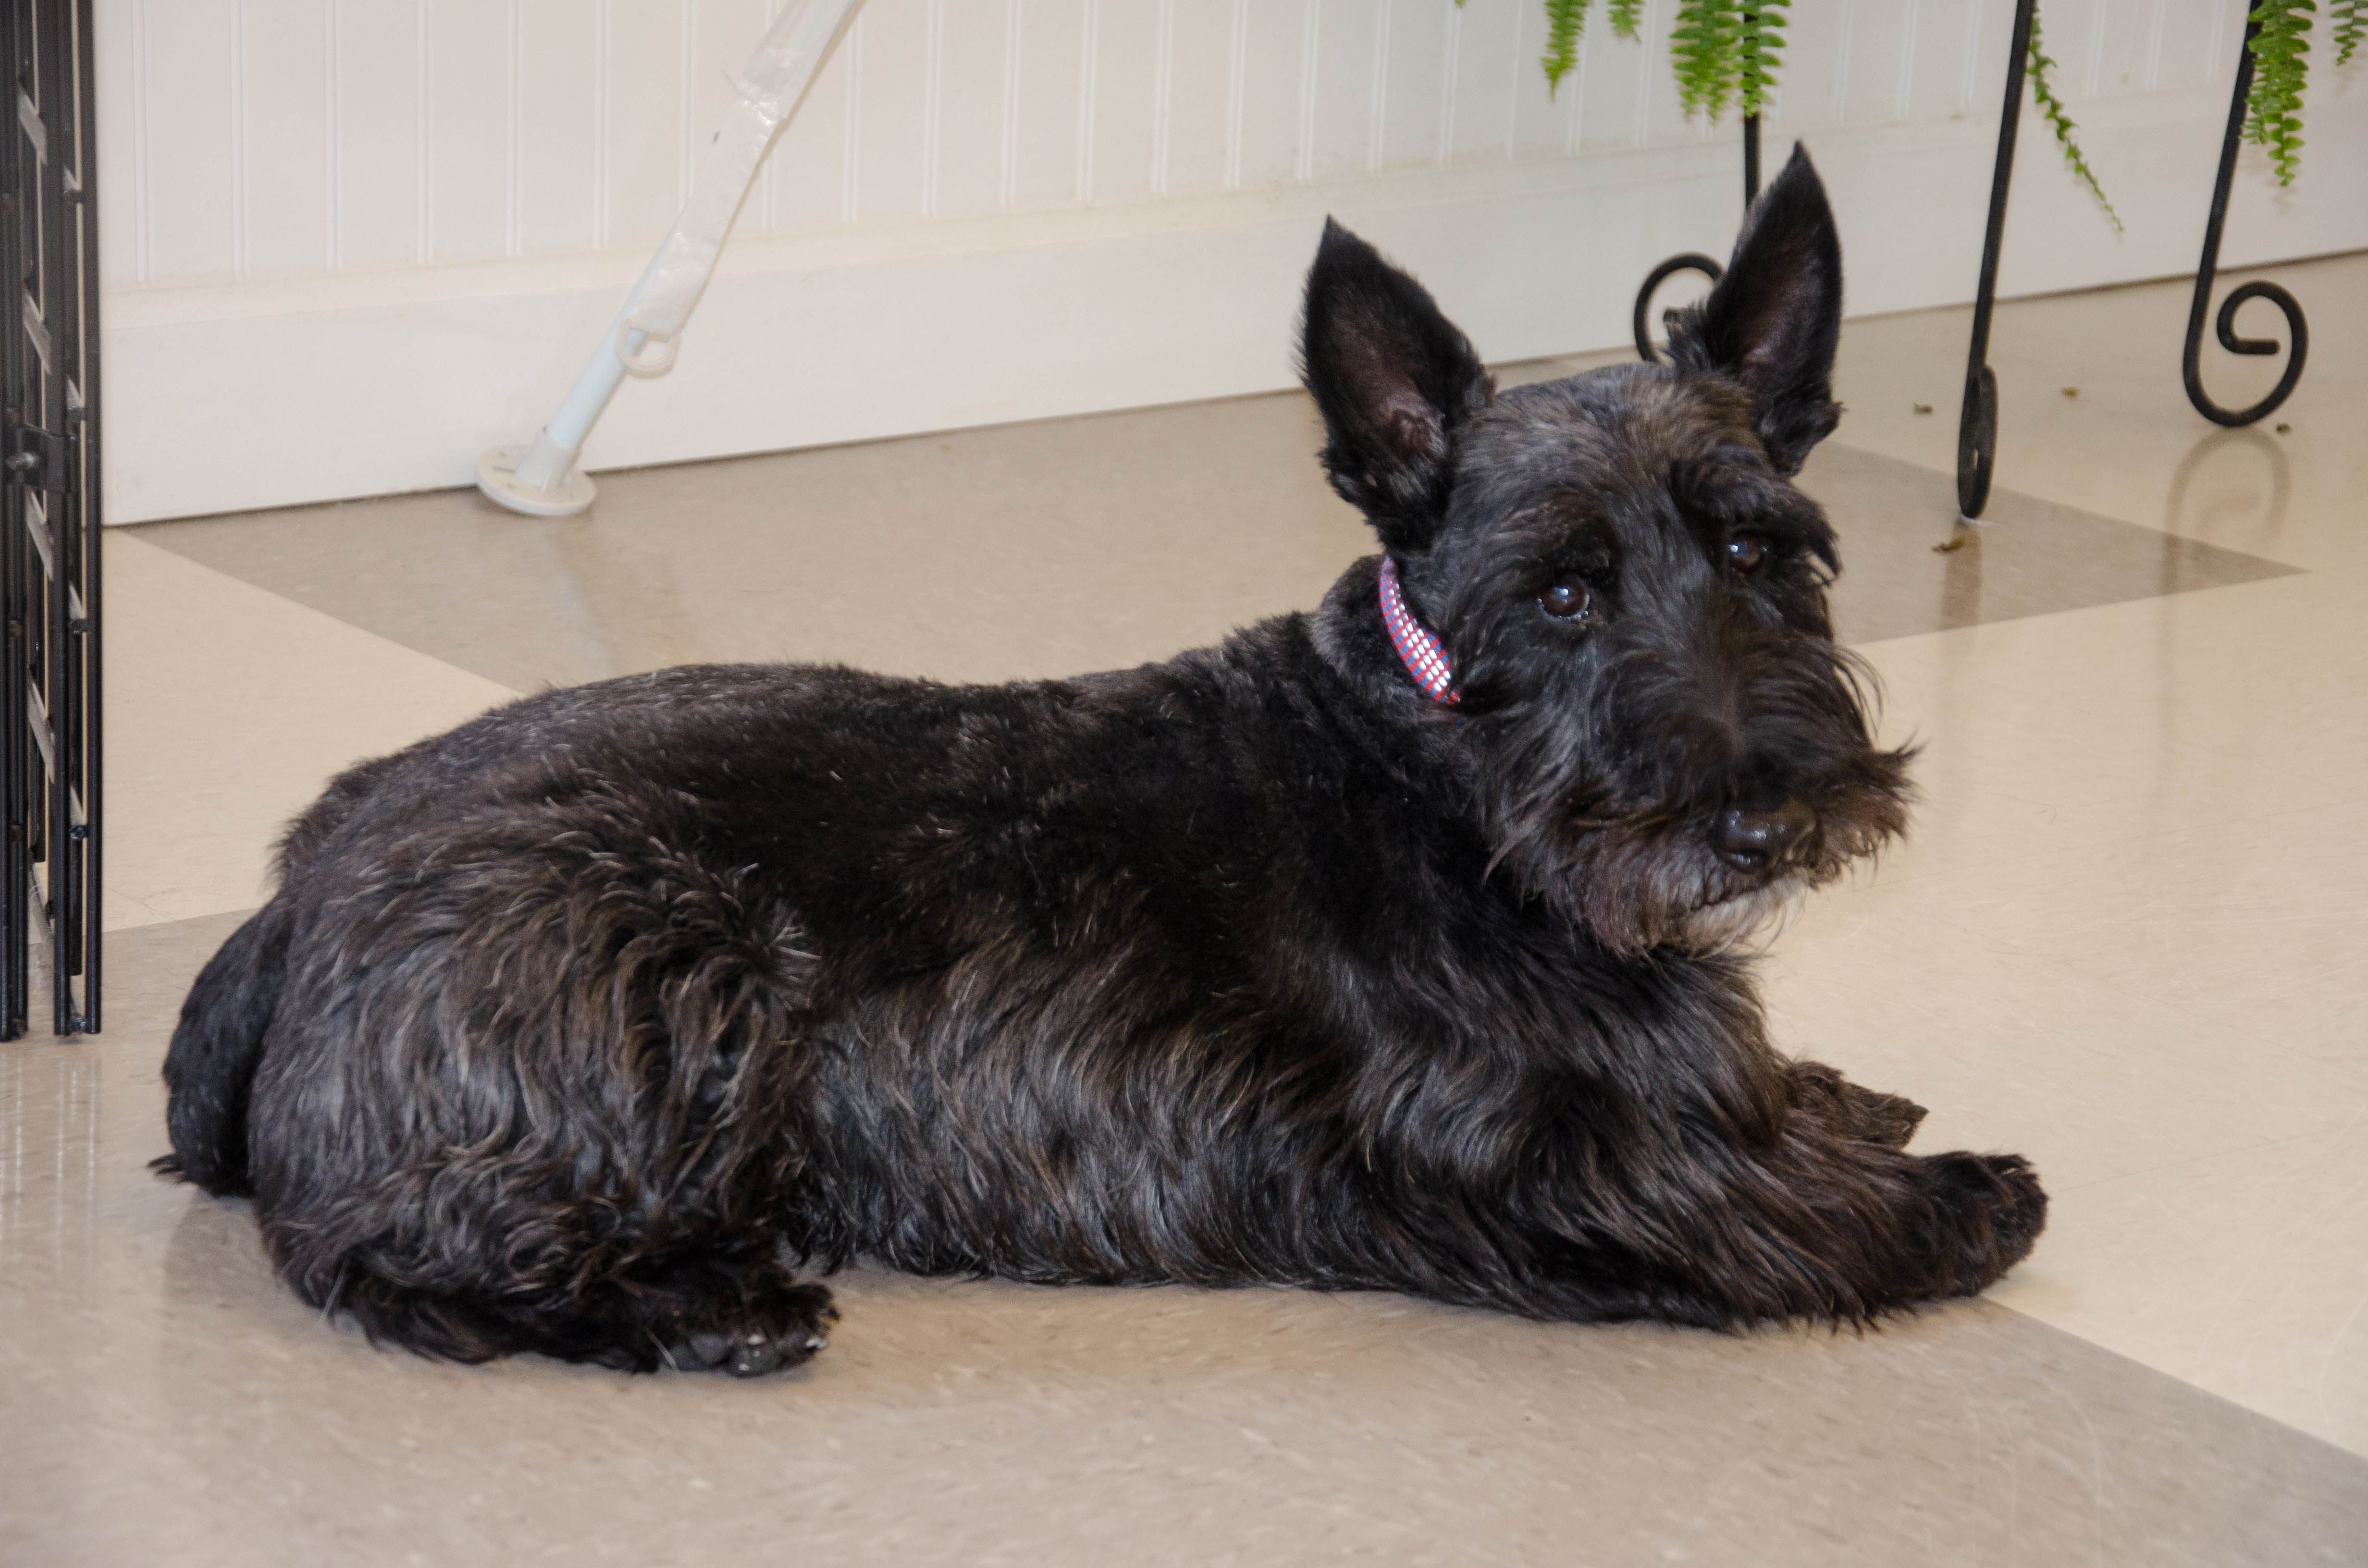 Clancy learning how to down stay in overnight boarding program  #Scottie #dogtraining #blackdog